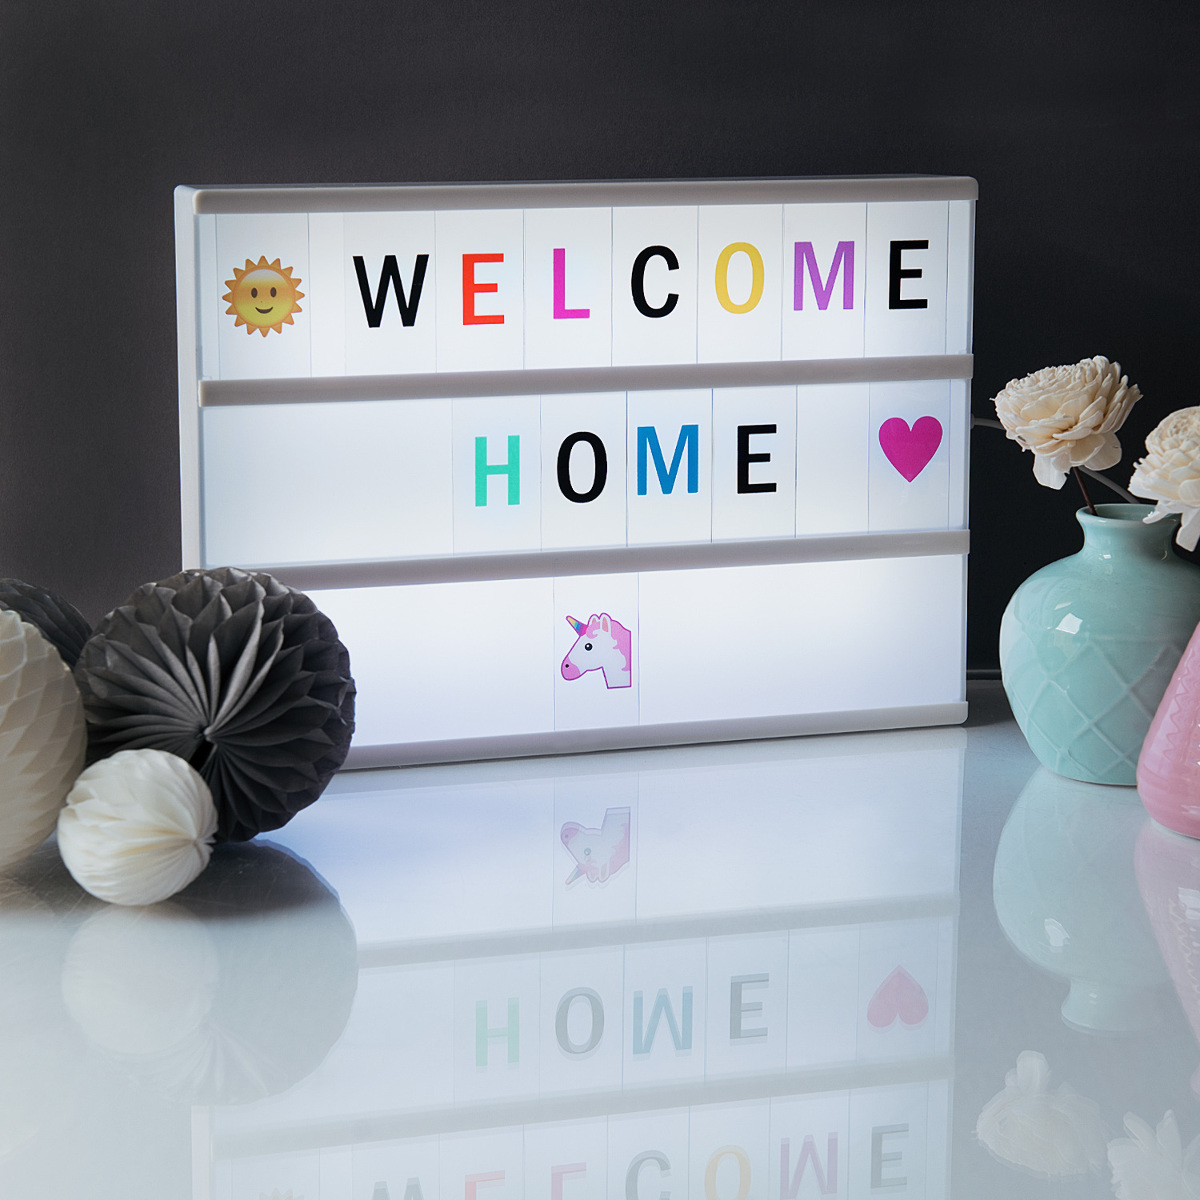 led lichtbox a4 lightbox 378 buchstaben bunt schwarz emoji netzteil light box ebay. Black Bedroom Furniture Sets. Home Design Ideas